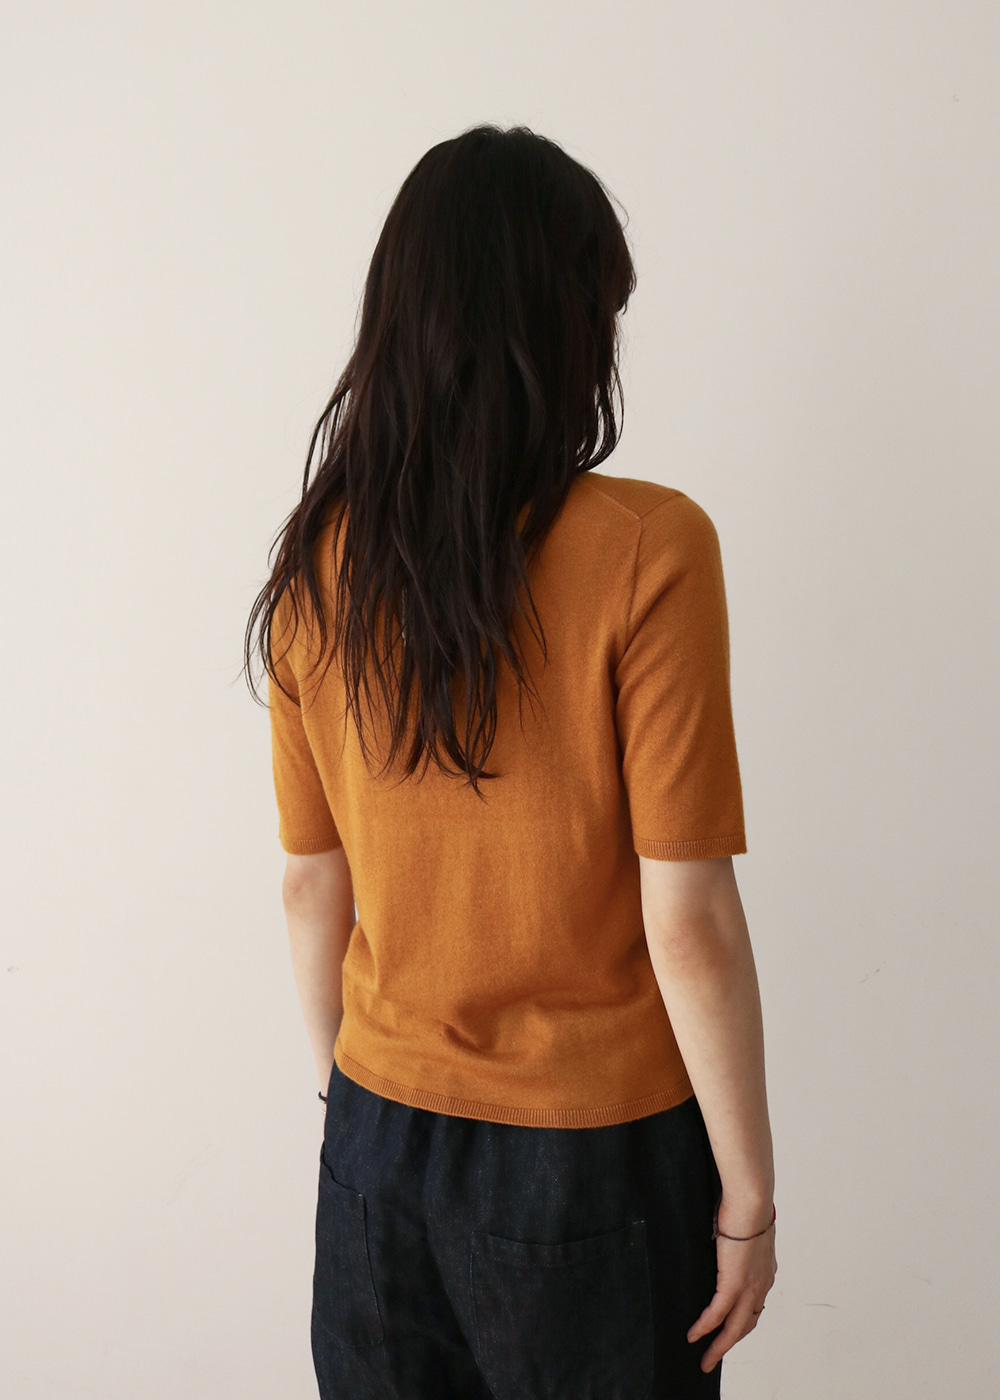 KNIT TOP - pumpkin